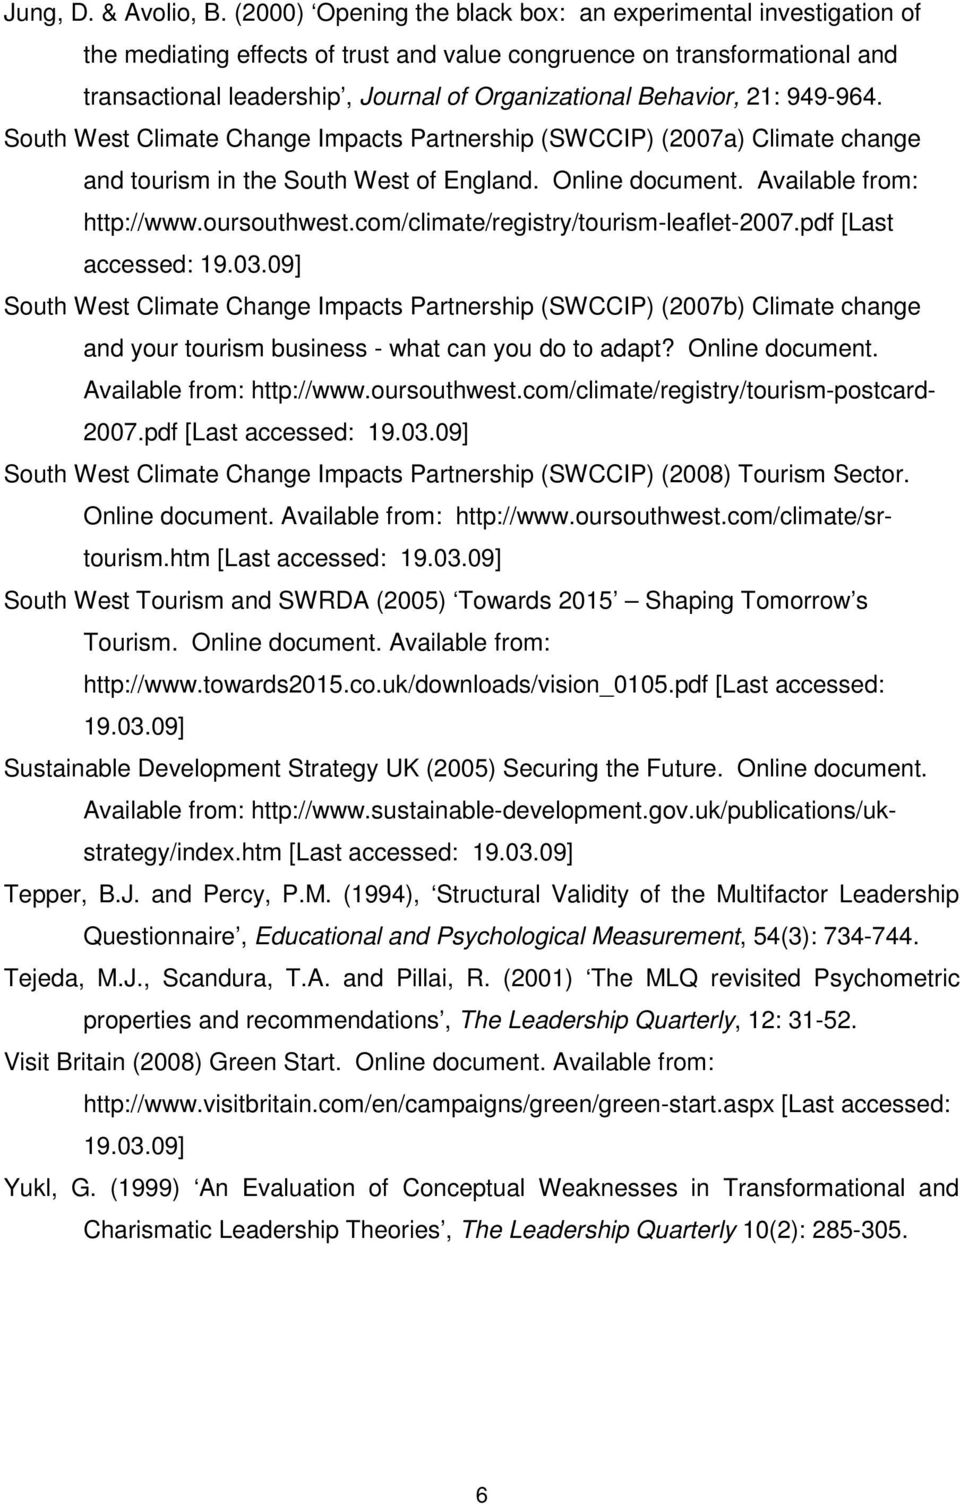 Behavior, 21: 949-964. South West Climate Change Impacts Partnership (SWCCIP) (2007a) Climate change and tourism in the South West of England. Online document. Available from: http://www.oursouthwest.